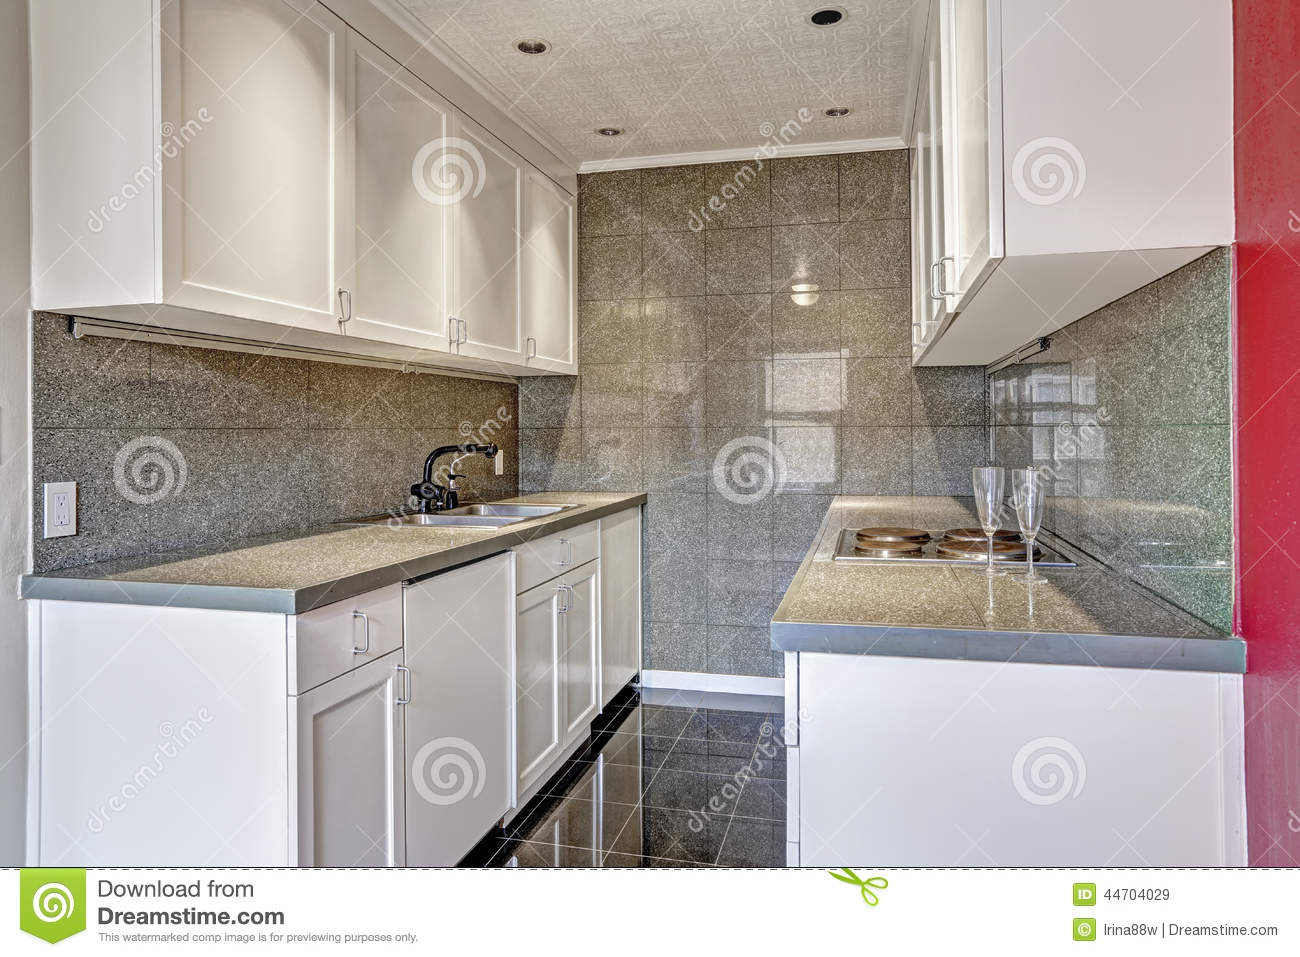 kitchen trim outdoor images modern with tile stock image of house design